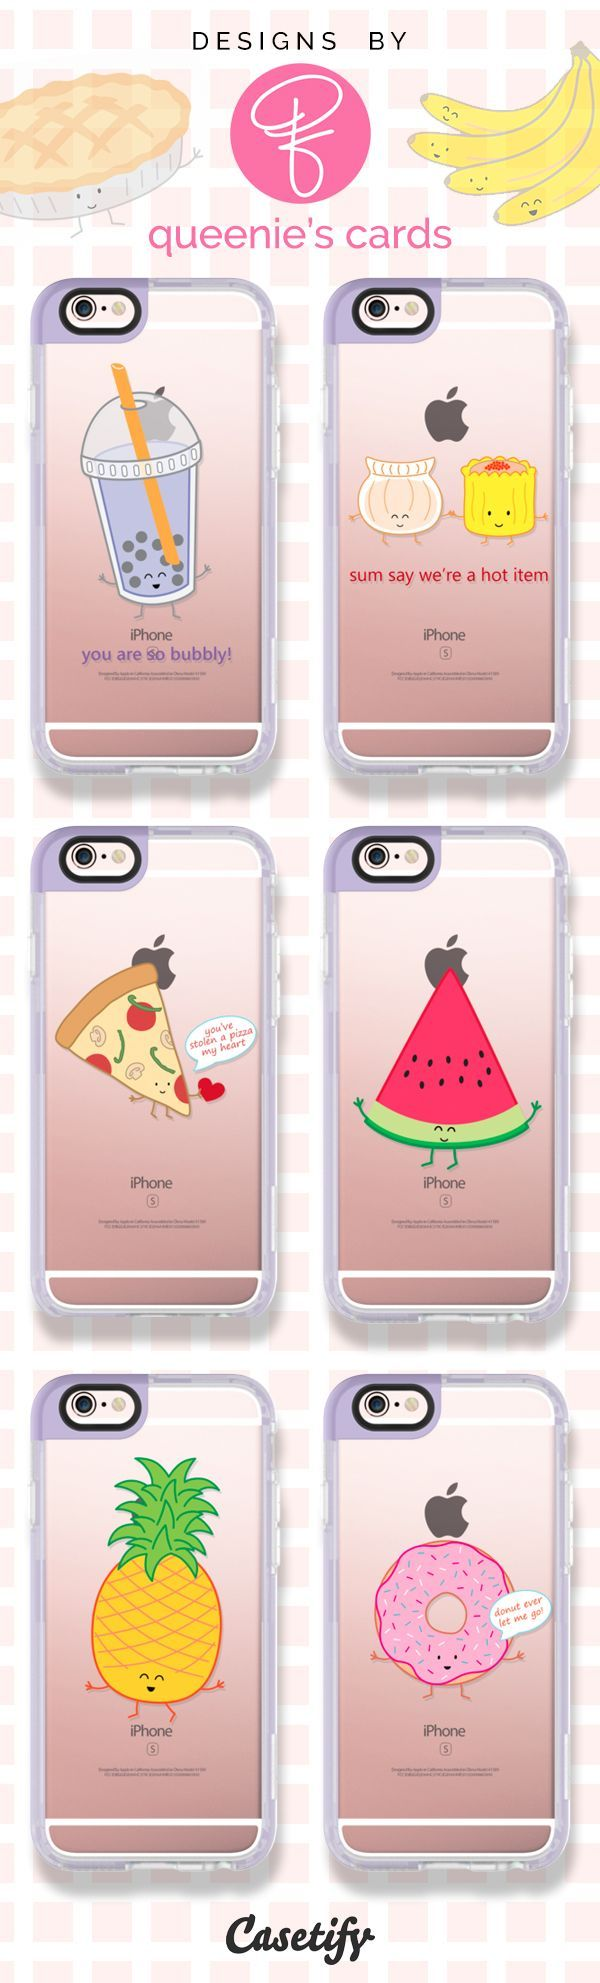 Good Food = Good Mood. Shop these adorable food phone cases designed by @queeniescards here >>> https://www.casetify.com/queeniescards/collection   @casetify